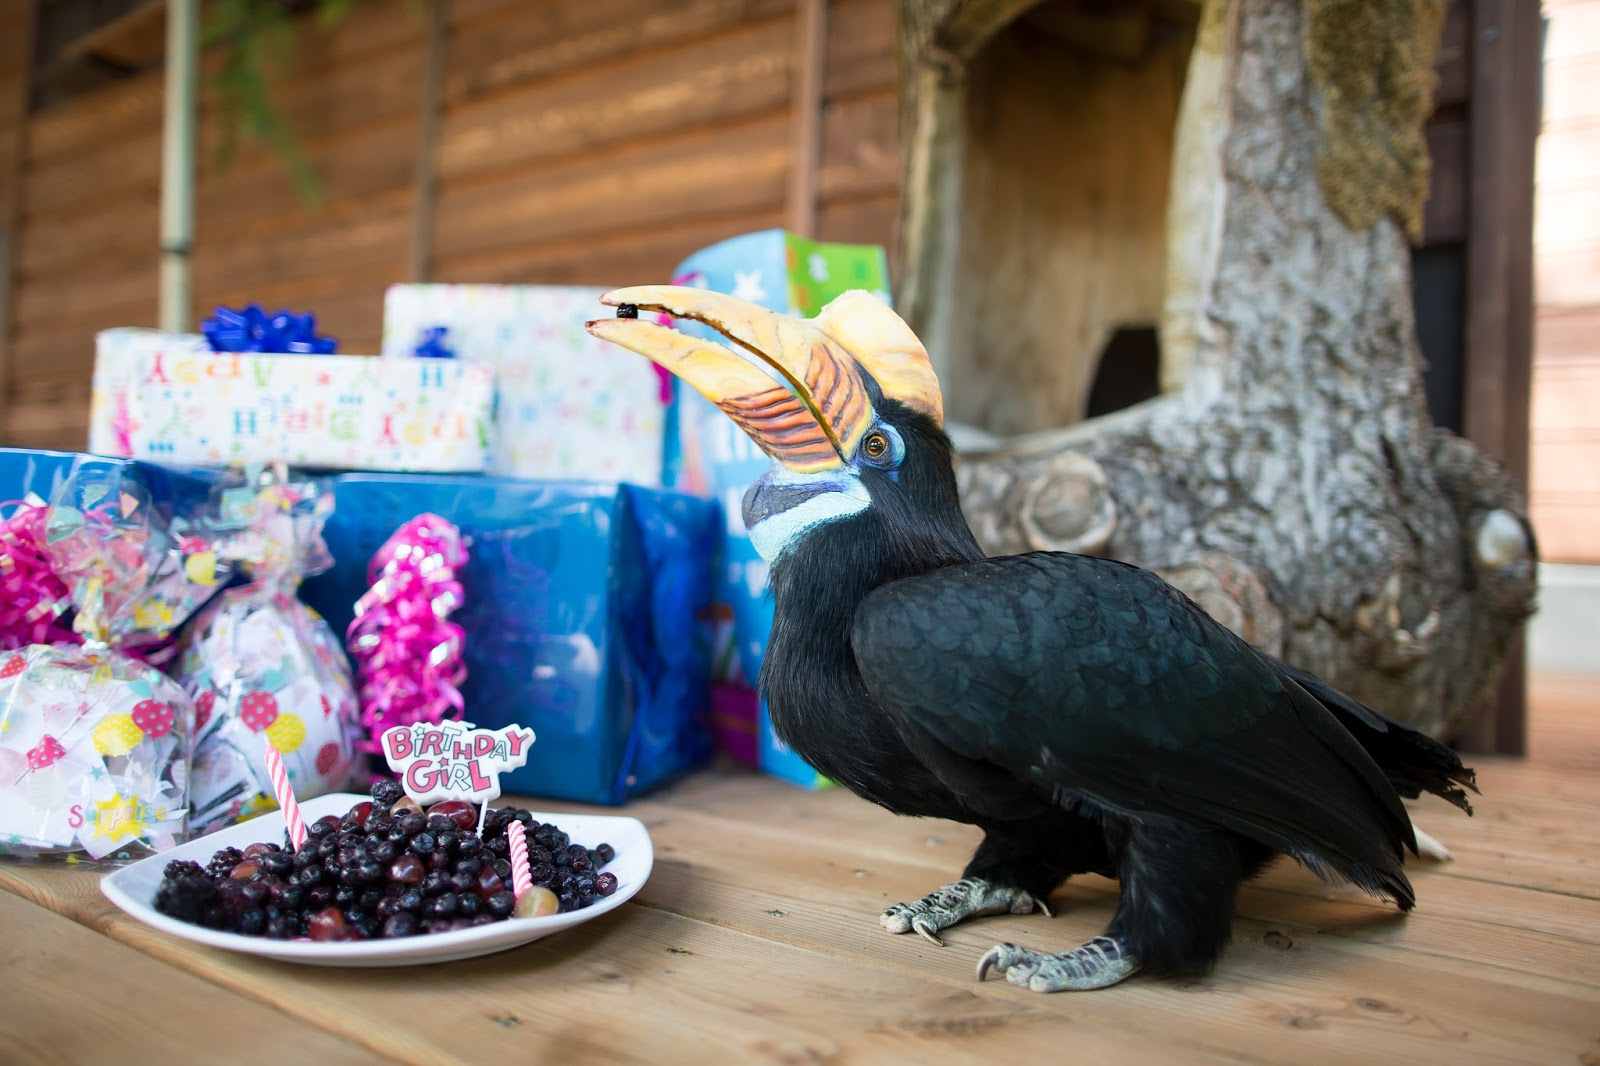 ... knows how to party! Photo by Jeremy Dwyer-Lindgren/ Woodland Park Zoo